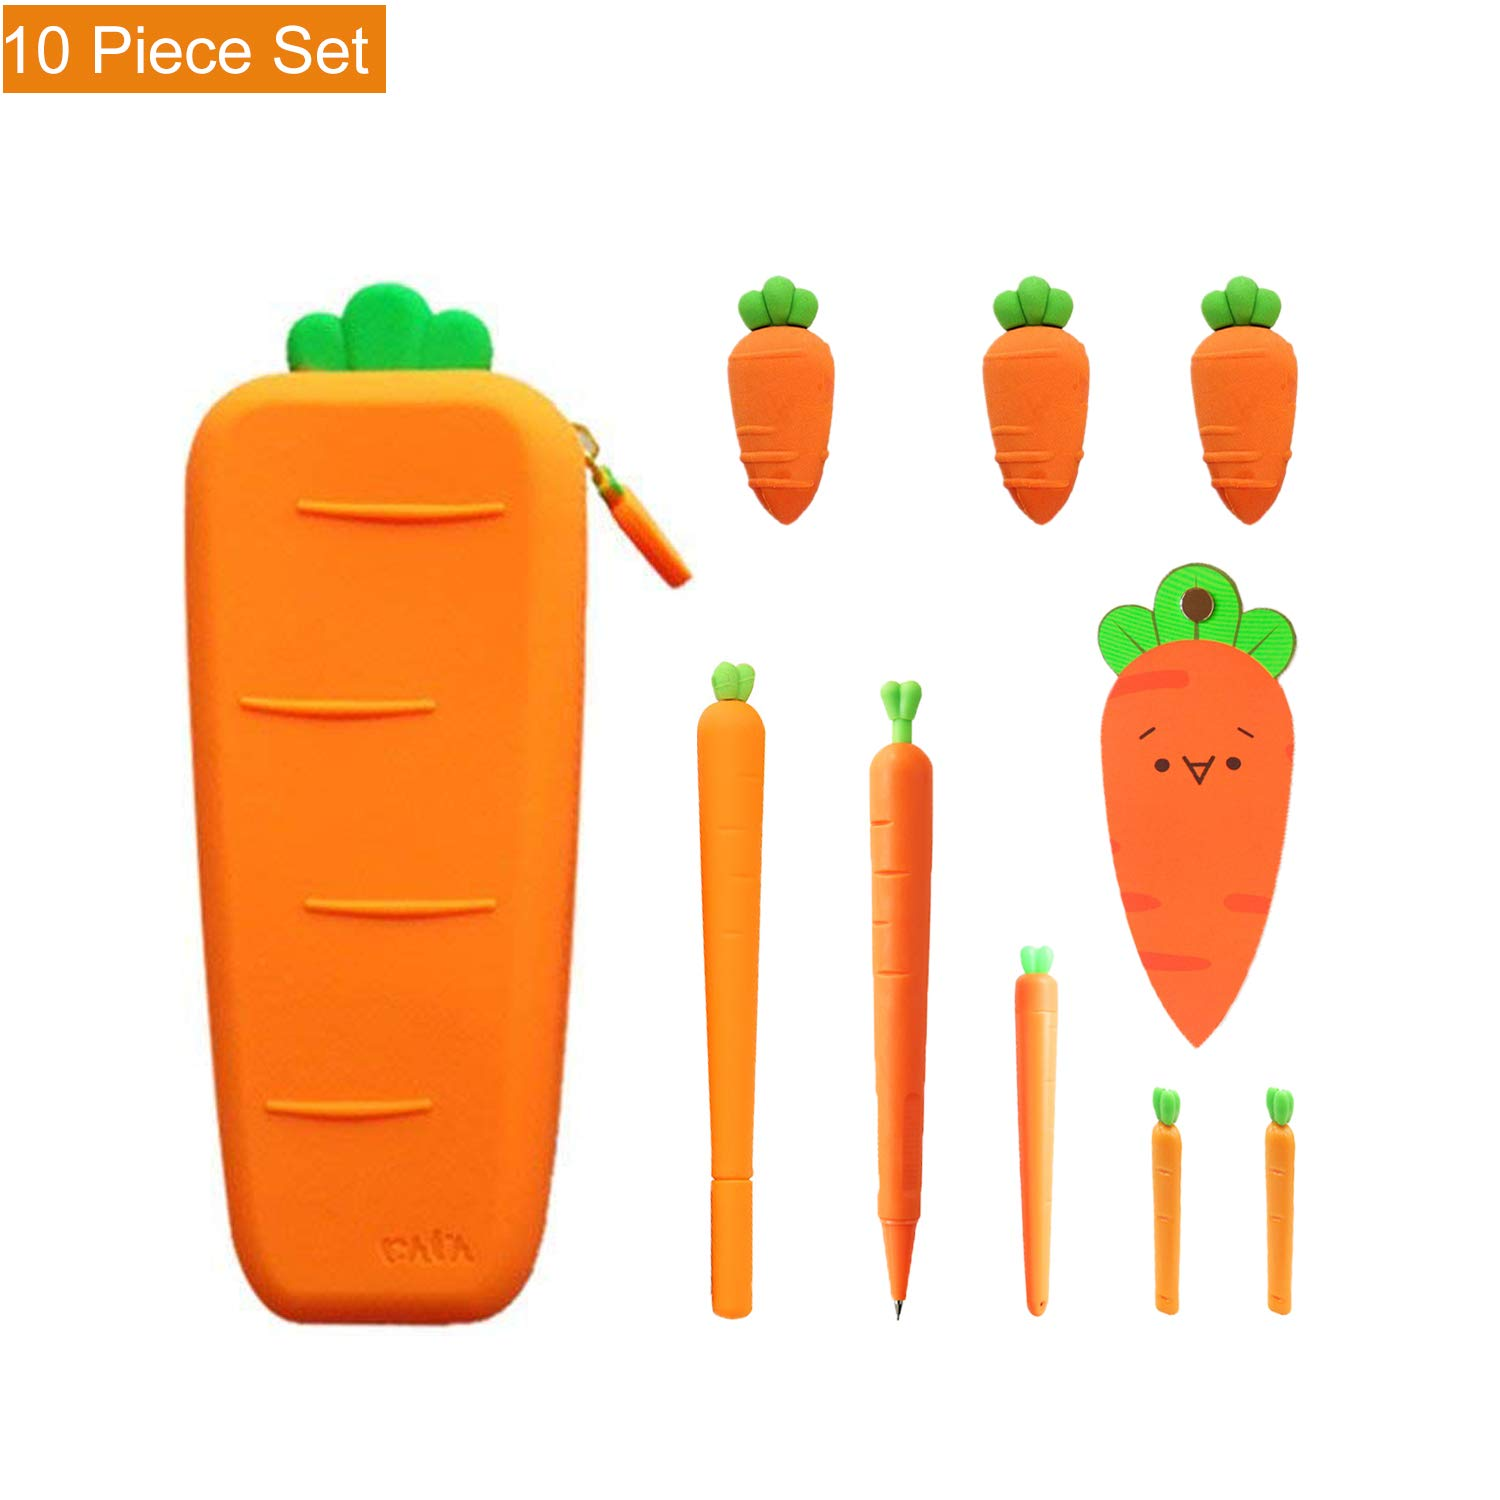 Cute Carrot Pencil Case Set - Pack of 10pcs,Large Capacity Soft Silicone Carrot Pen Pouch,Gel Ink Pen,Mechanical Pencil,Eraser,Lead Refills for Cute School Supplies/Stationery Kids Students Waterproof